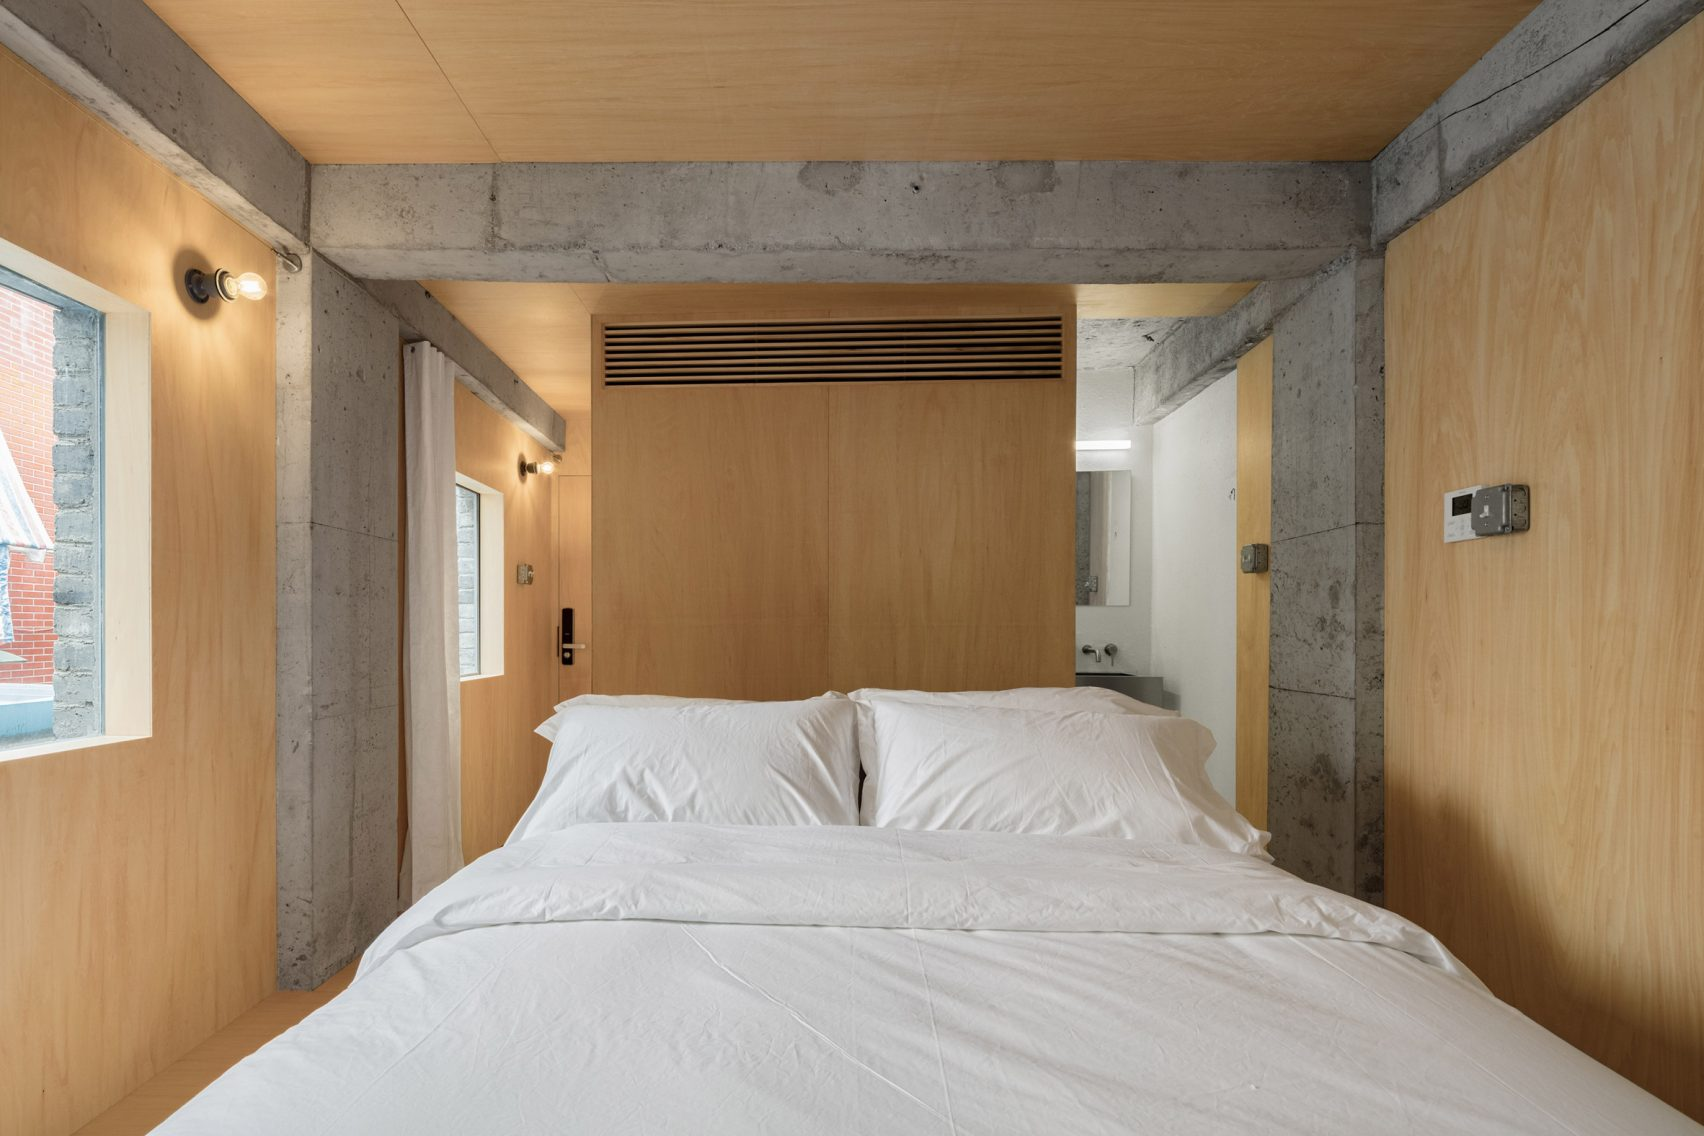 Hotel Far&Near XinYuqingli St by Kooo Architects in China